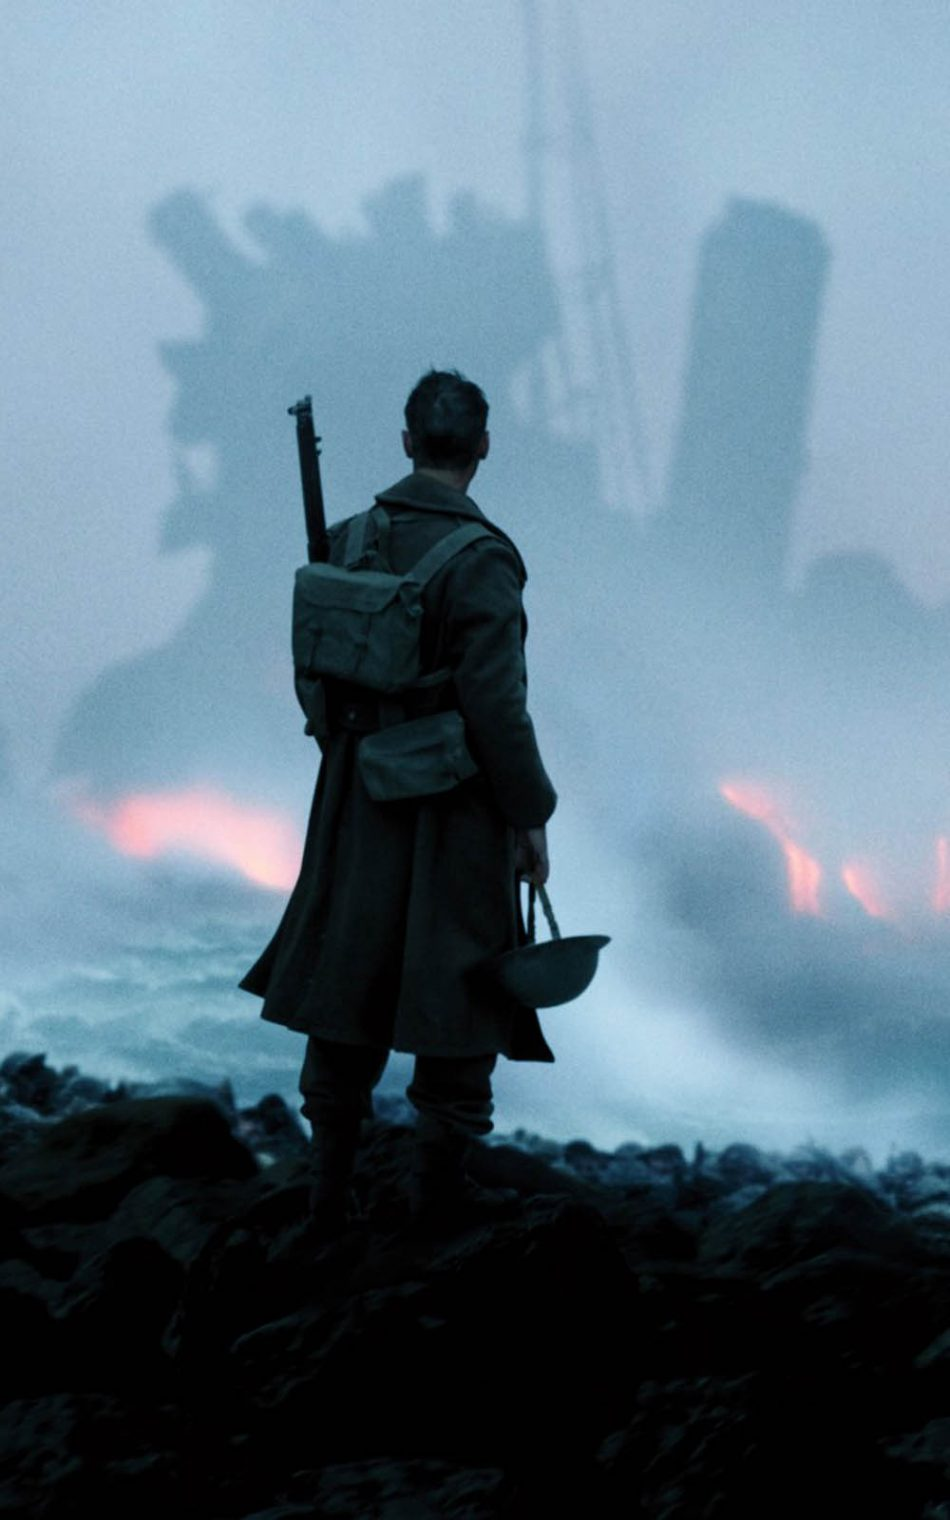 dunkirk movie 2017 - download free 100% pure hd quality mobile wallpaper